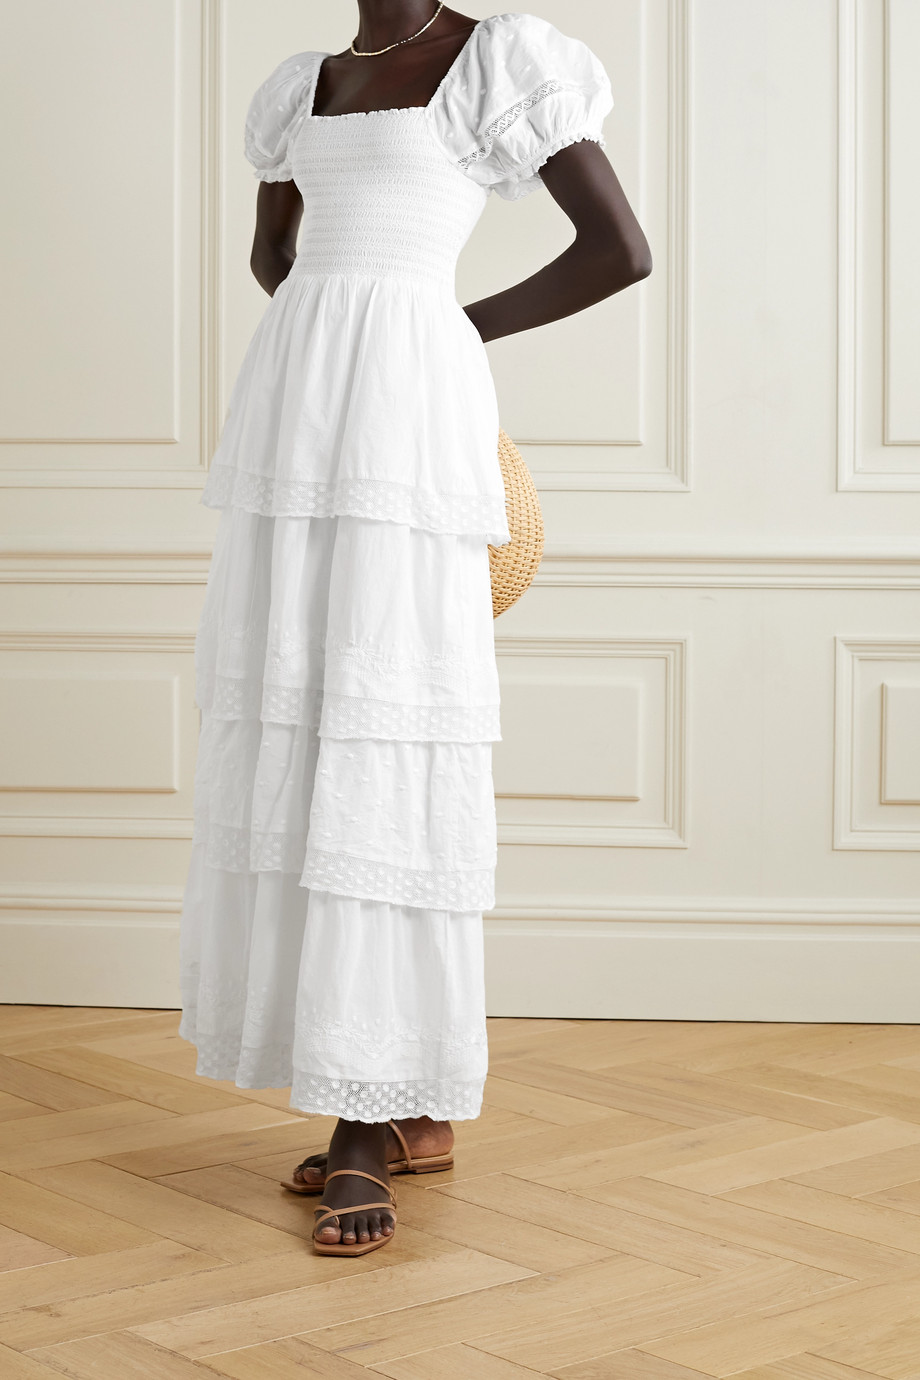 LoveShackFancy Capella tiered shirred embroidered cotton maxi dress